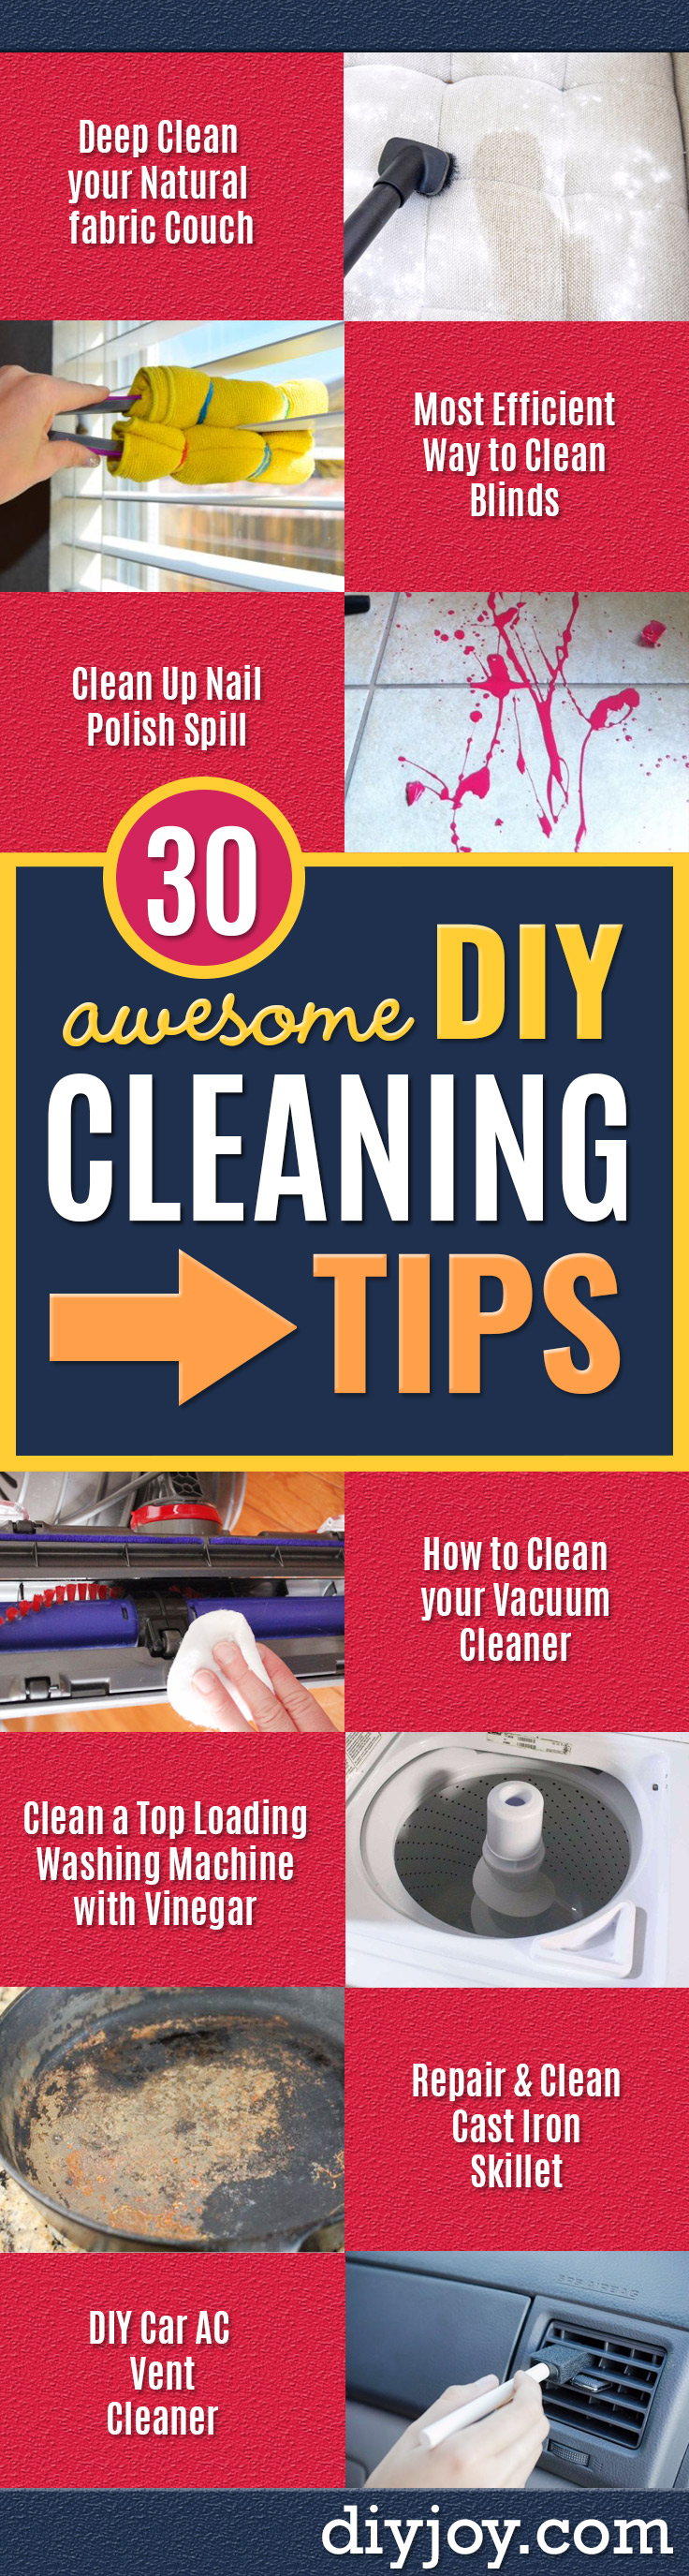 Cleaning Tips and Tricks - Best Cleaning Hacks, Recipes and Tutorials - Daily Ways to Clean For Kitchen, For Couches, Bathroom, Bedroom, Laundry, Floors, Furniture, Windows, Cleaners and More for Cleaning Your Home- Quick Ideas for Lazy People - Cool Cleaning Hack Tutorial - DIY Projects and Crafts by DIY JOY http://diyjoy.com/diy-cleaning-tips-tricks